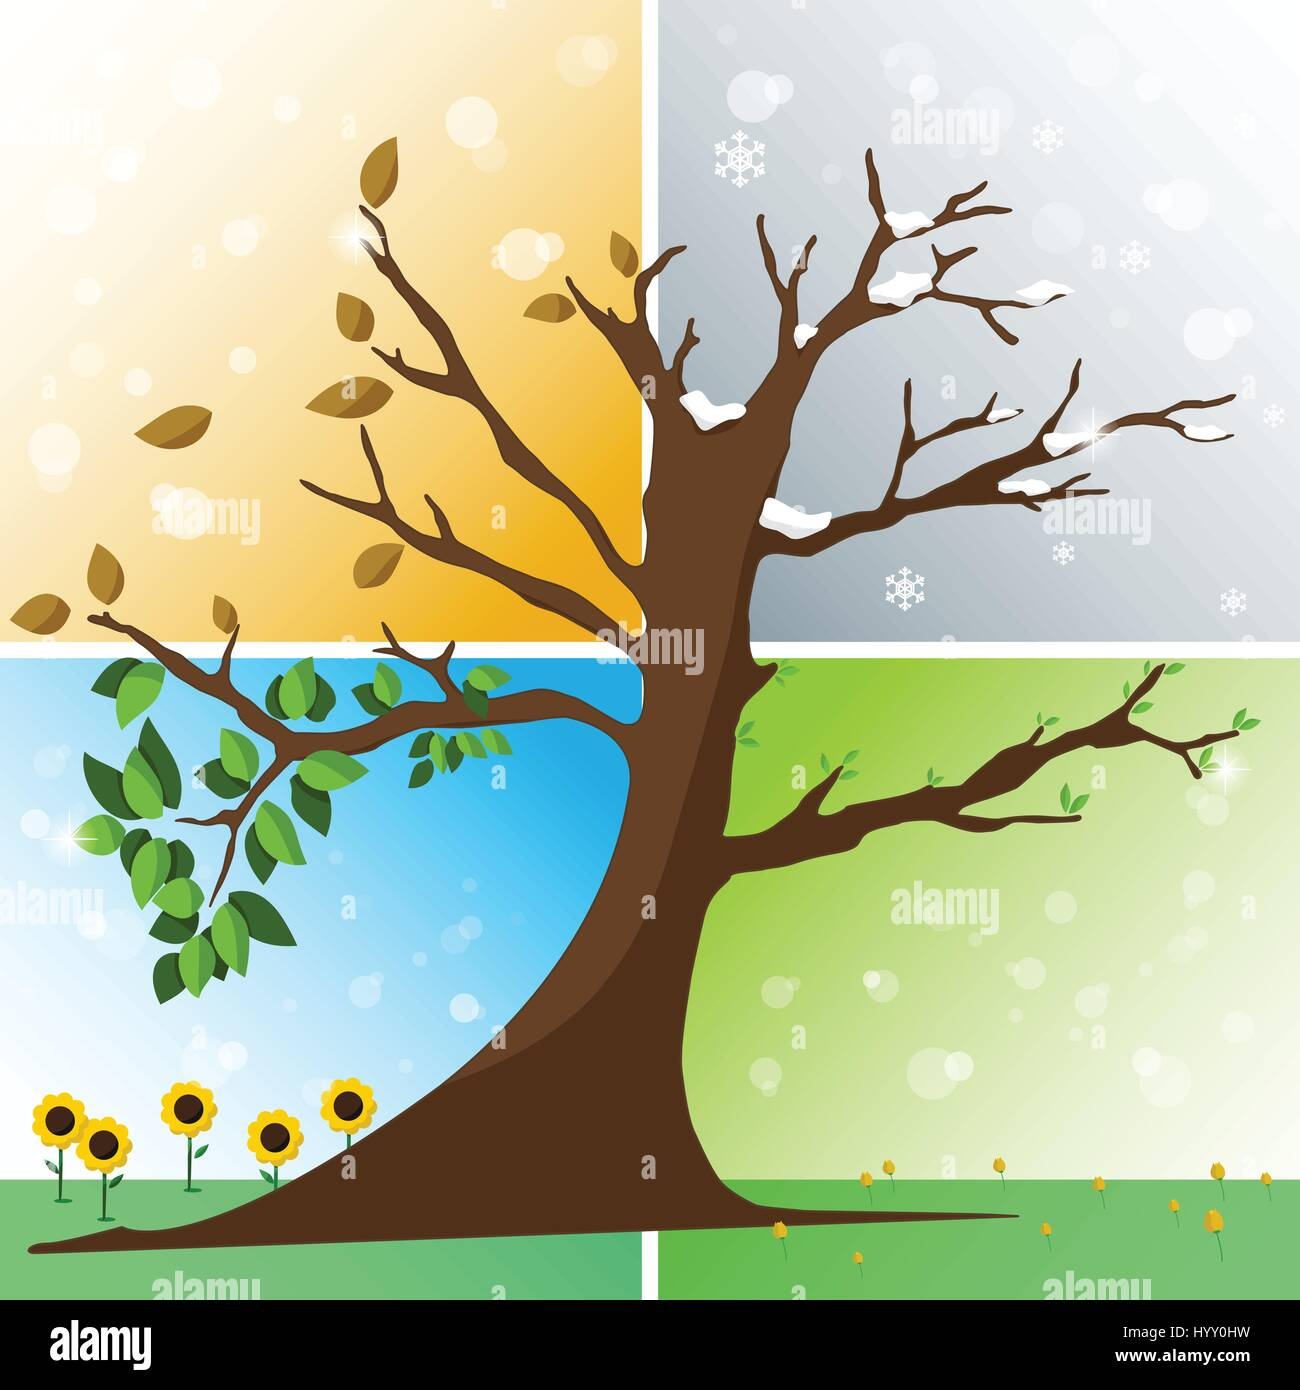 Four seasons in one tree - spring, summer, autumn, winter vector illustration - Stock Image